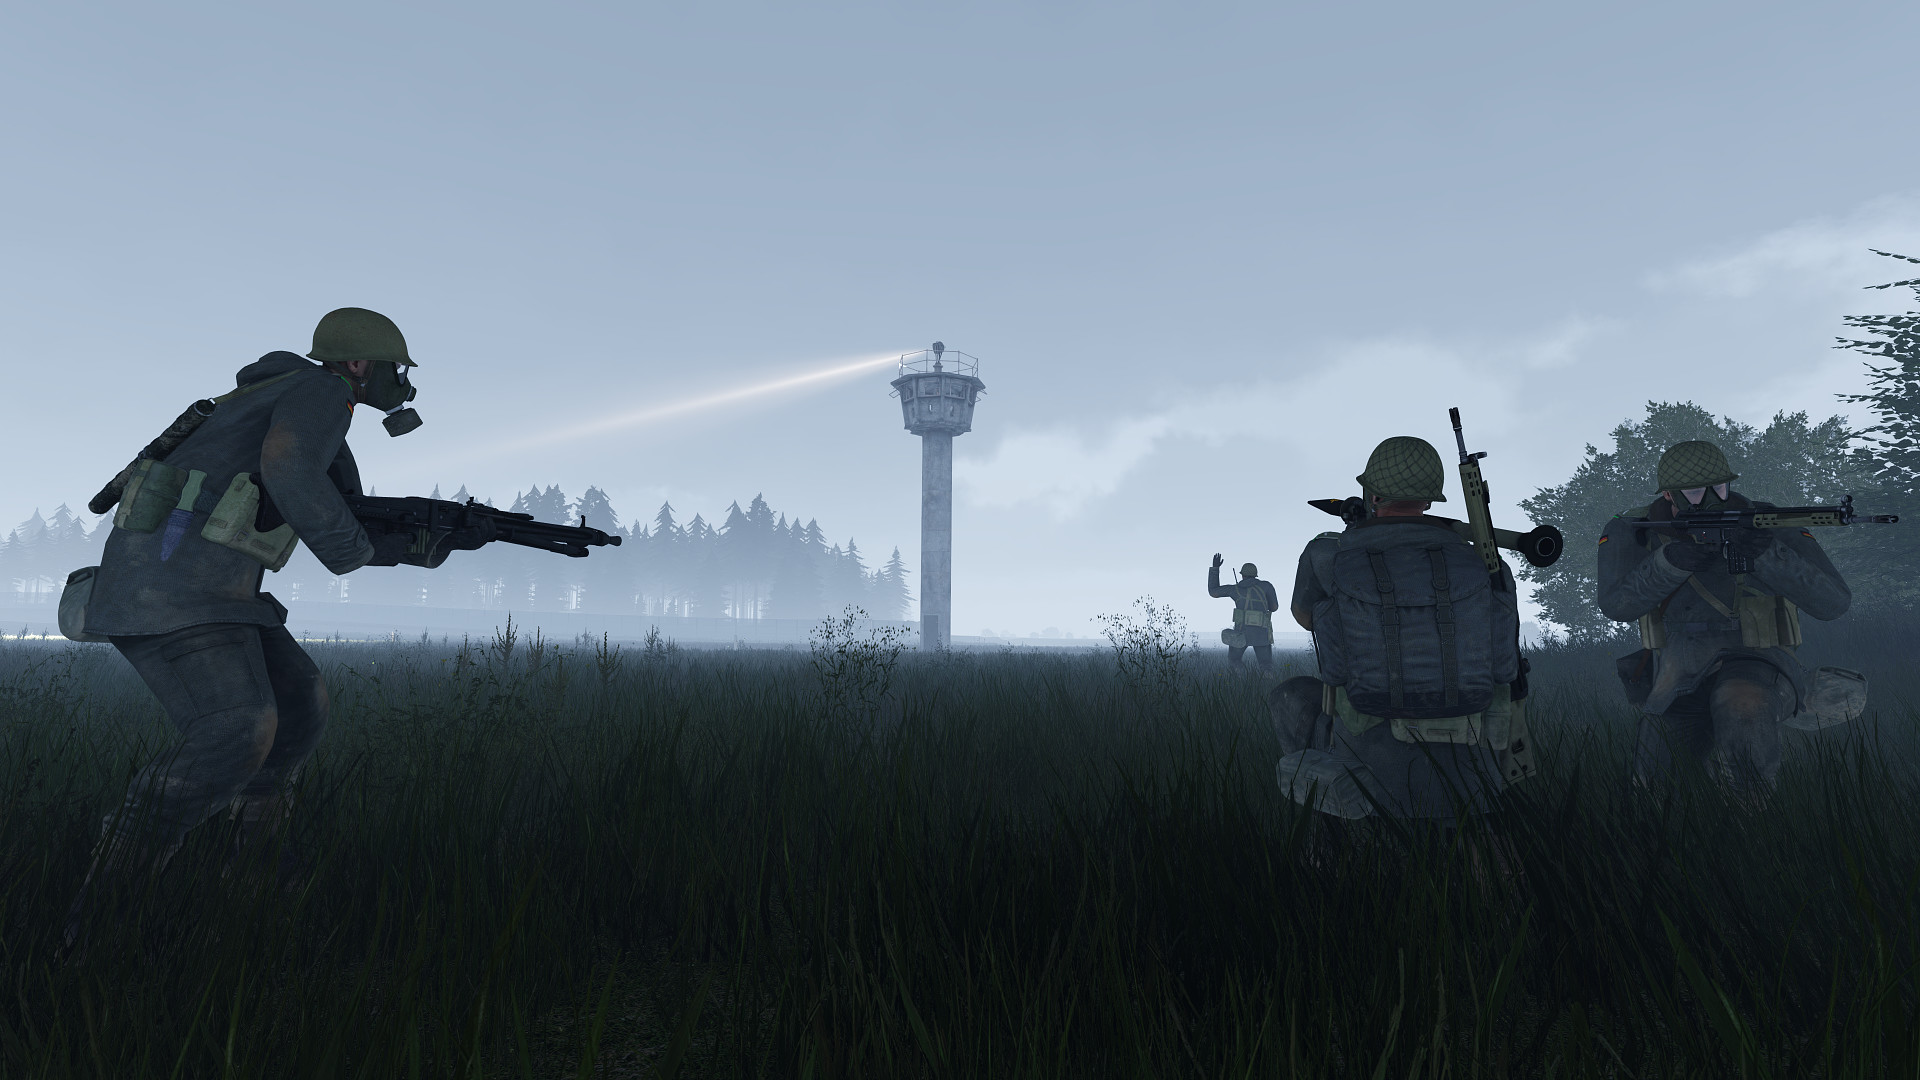 arma3_dlc_creator_gm_screenshot_01.jpg